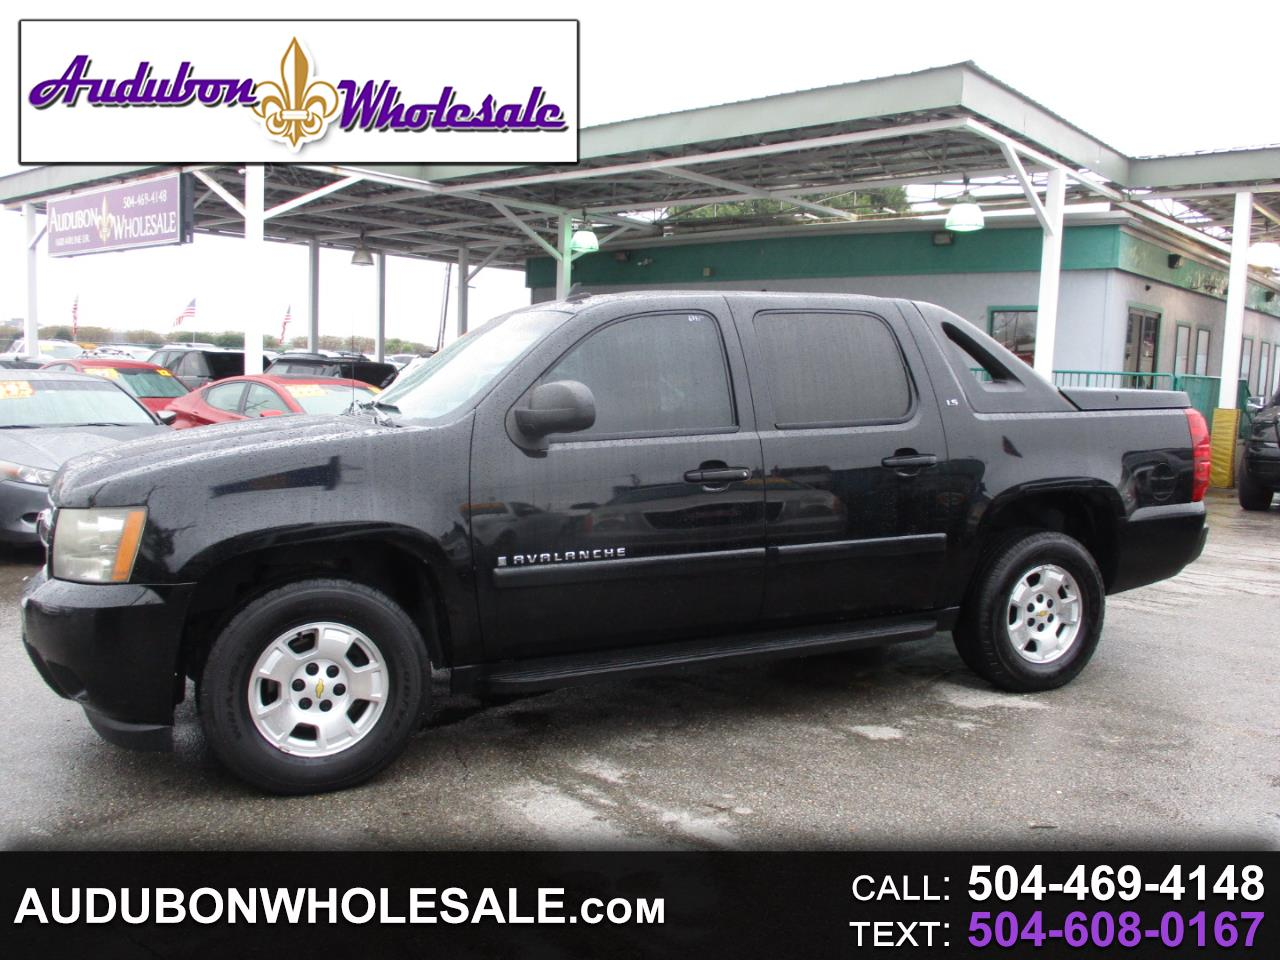 Chevrolet Avalanche LS 2WD 2009